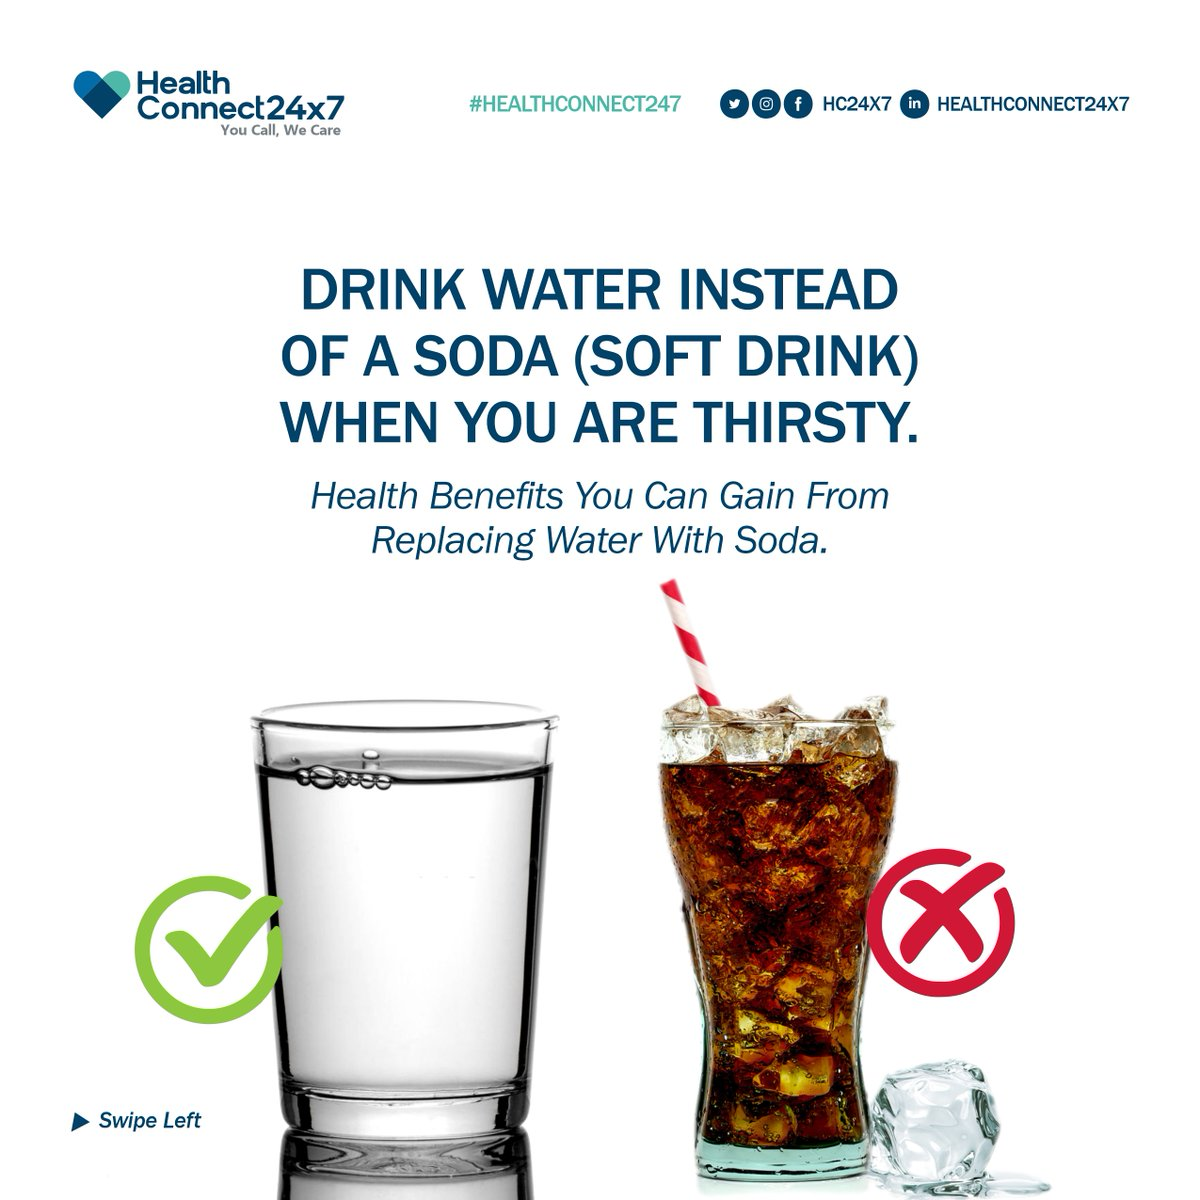 Have you ever felt thirsty and you took a soda or any other beverage instead of water? You feel unsatisfied but still, proceed to take even more soda, the feeling doesn't stop until you take a cup of water.  #HealthTips #Soda #DrinkWater #Water #Nutrition #HealthConnect247